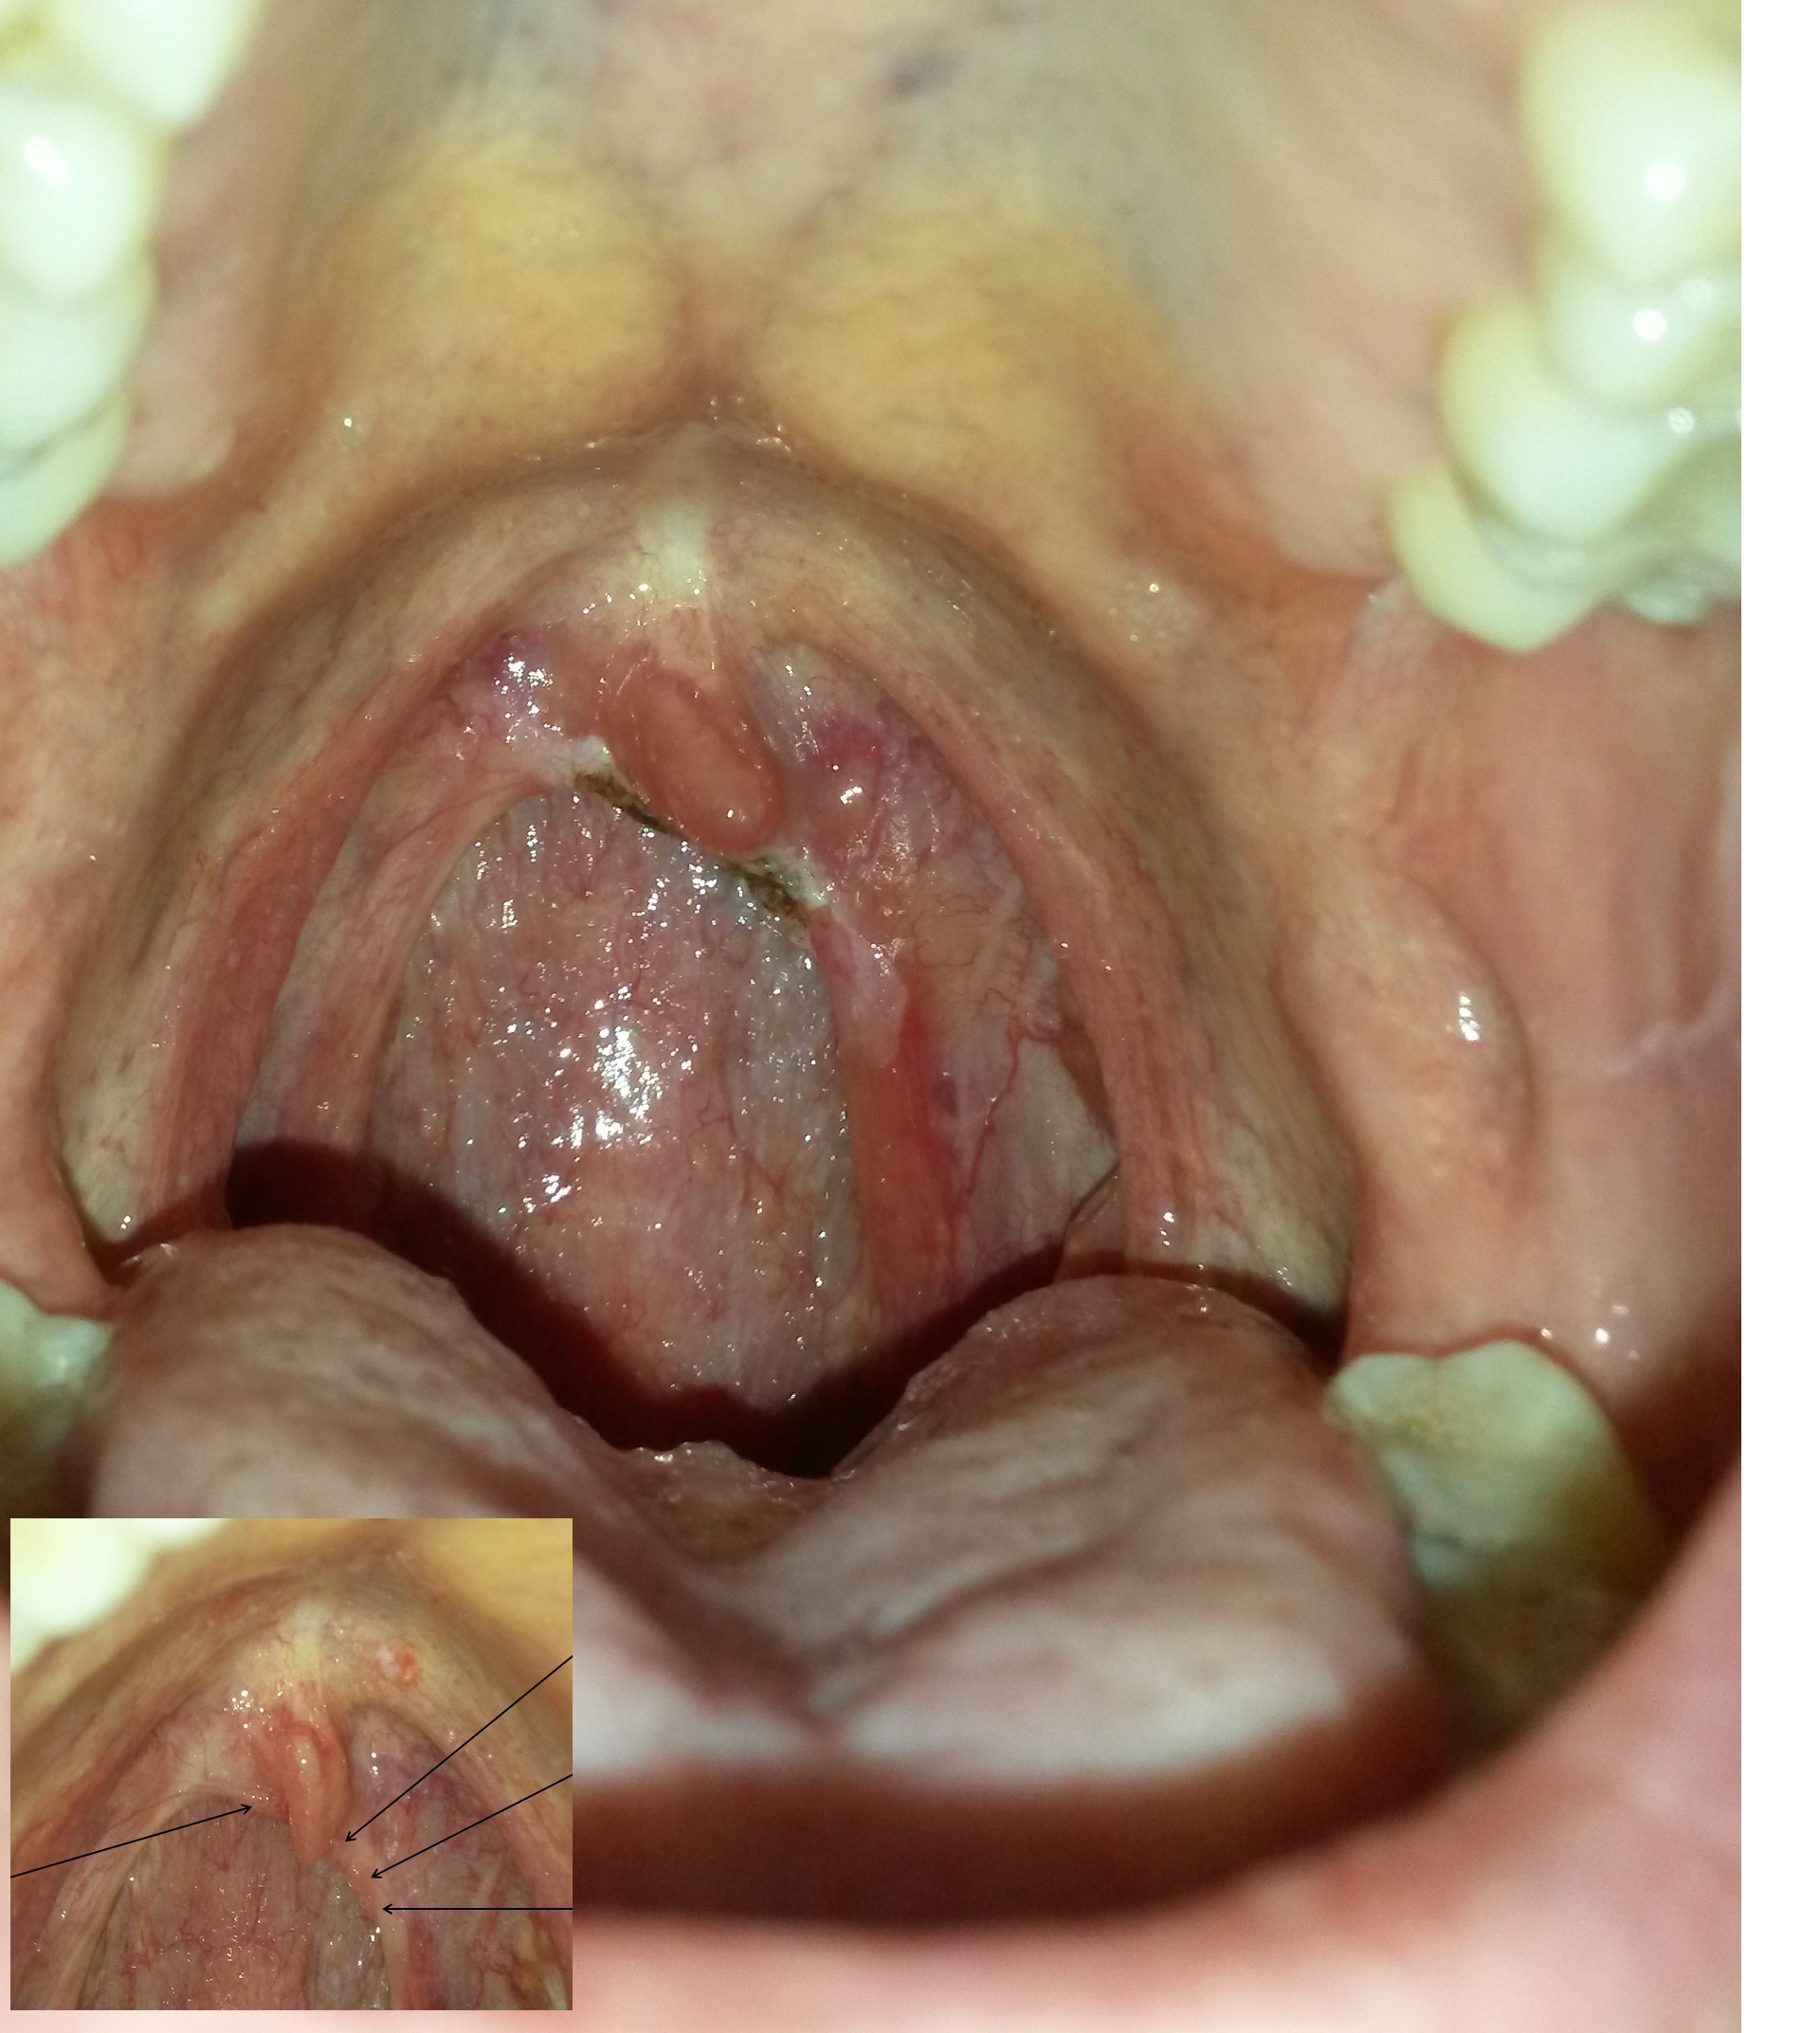 hhh | Cervical Cancer | Oral Sex, Hpv warts in throat treatment